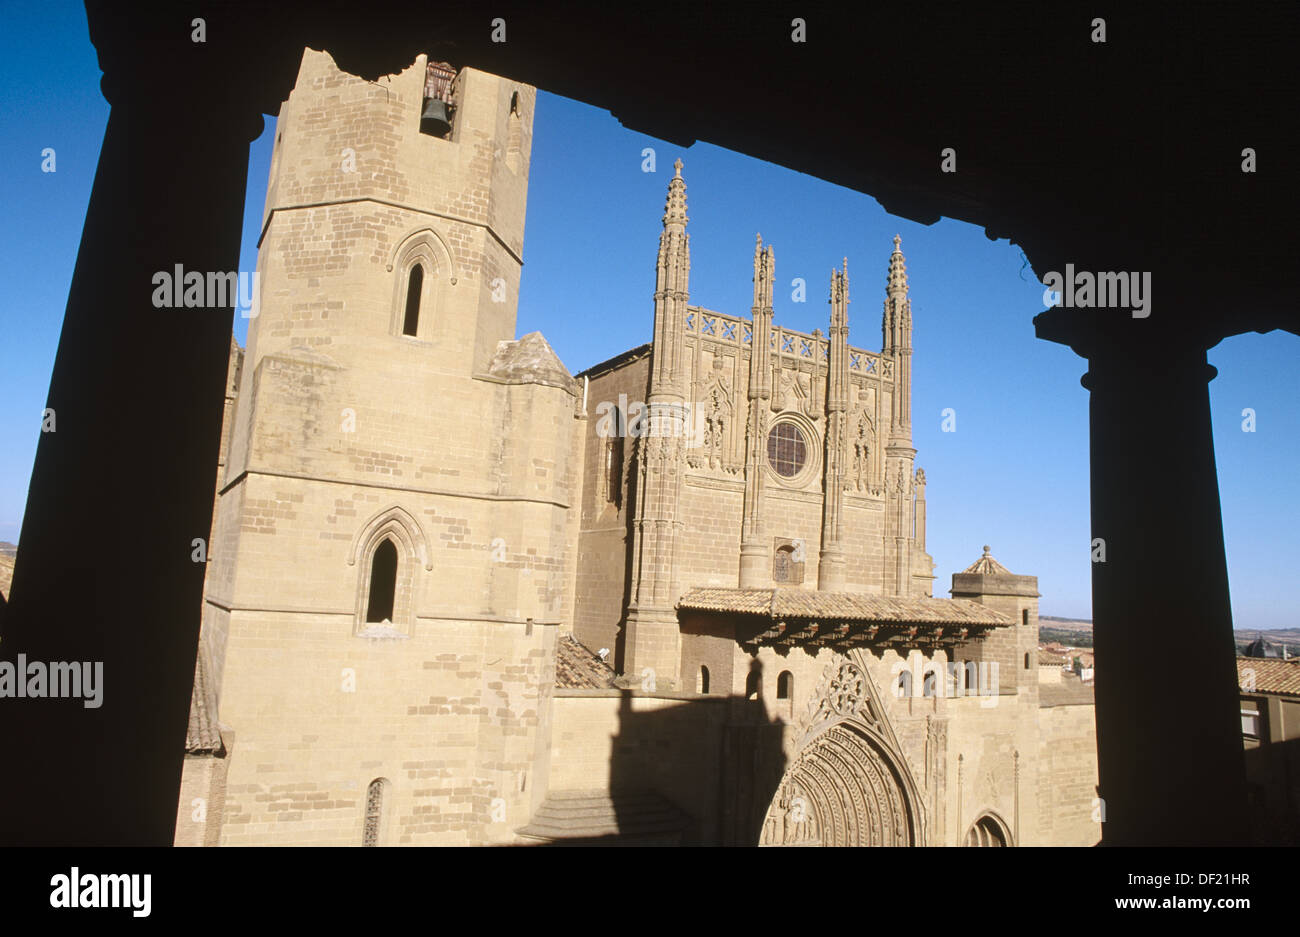 Cathedral. Huesca. Aragon. Spain. - Stock Image